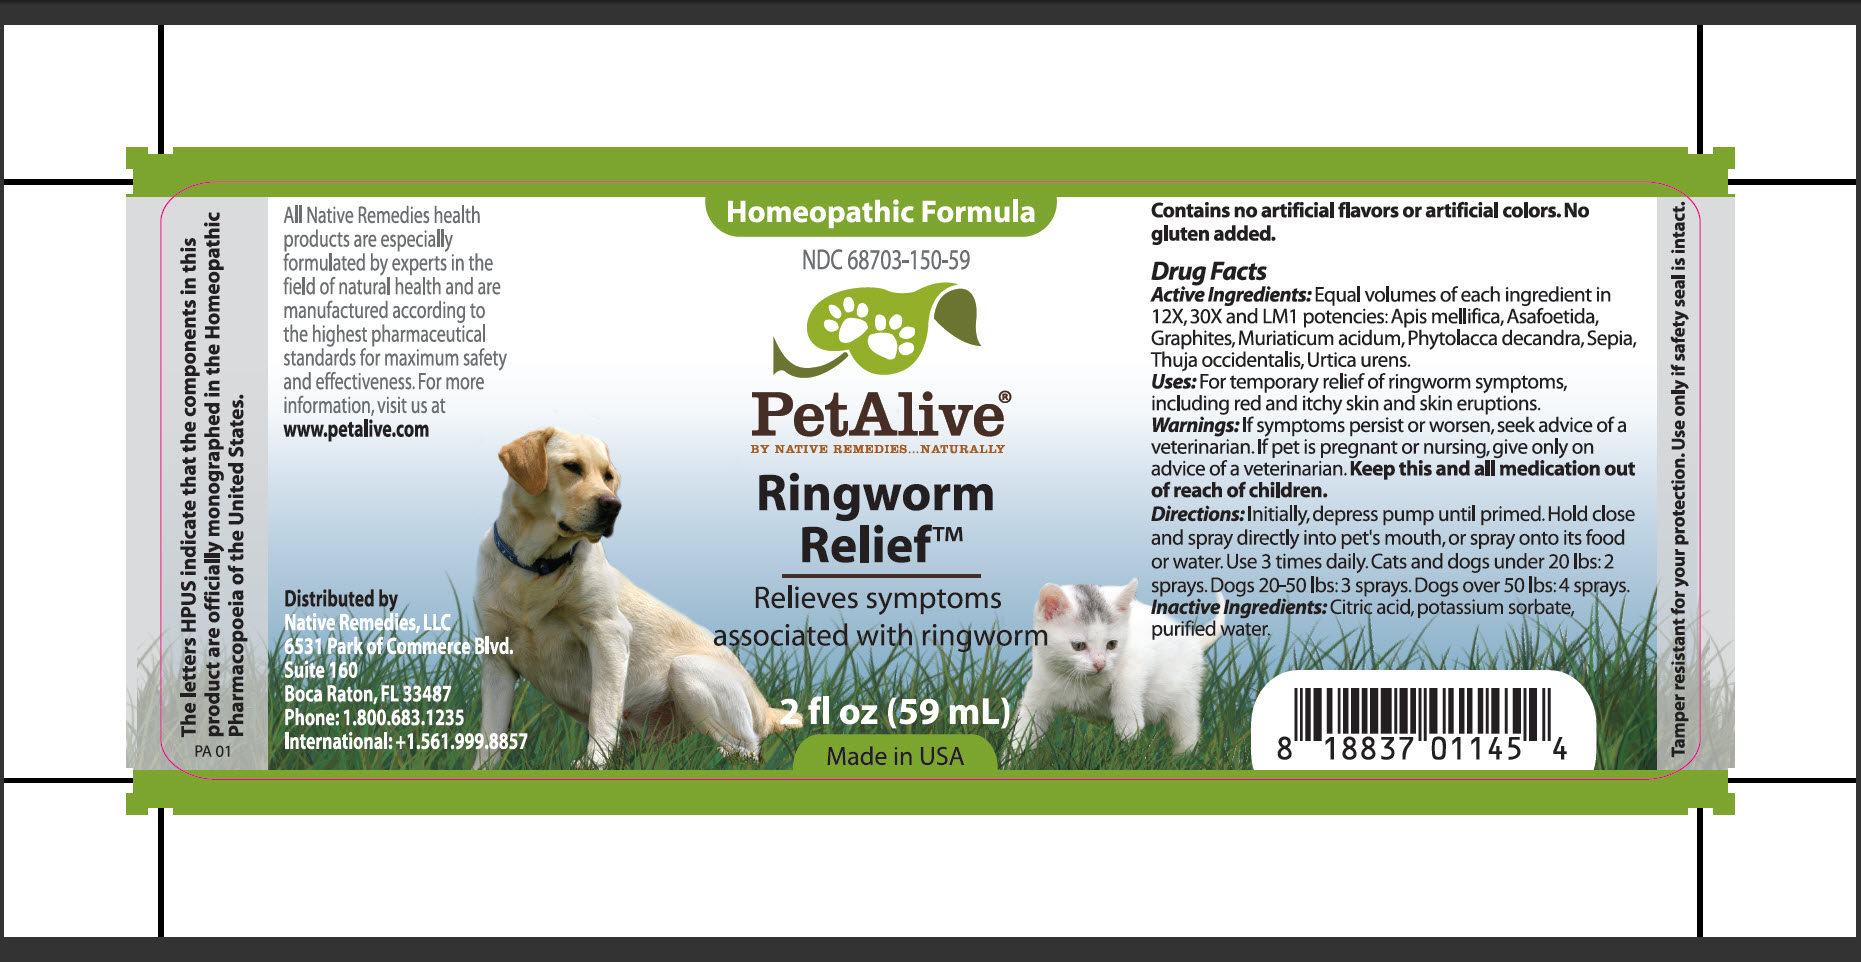 Ringworm Relief (Apis Mellifica, Asafoetida, Graphites, Muriaticum Acidum, Phytolacca Decandra, Sepia, Thuja Occidentalis, Urtica Urens) Spray [Native Remedies, Llc]